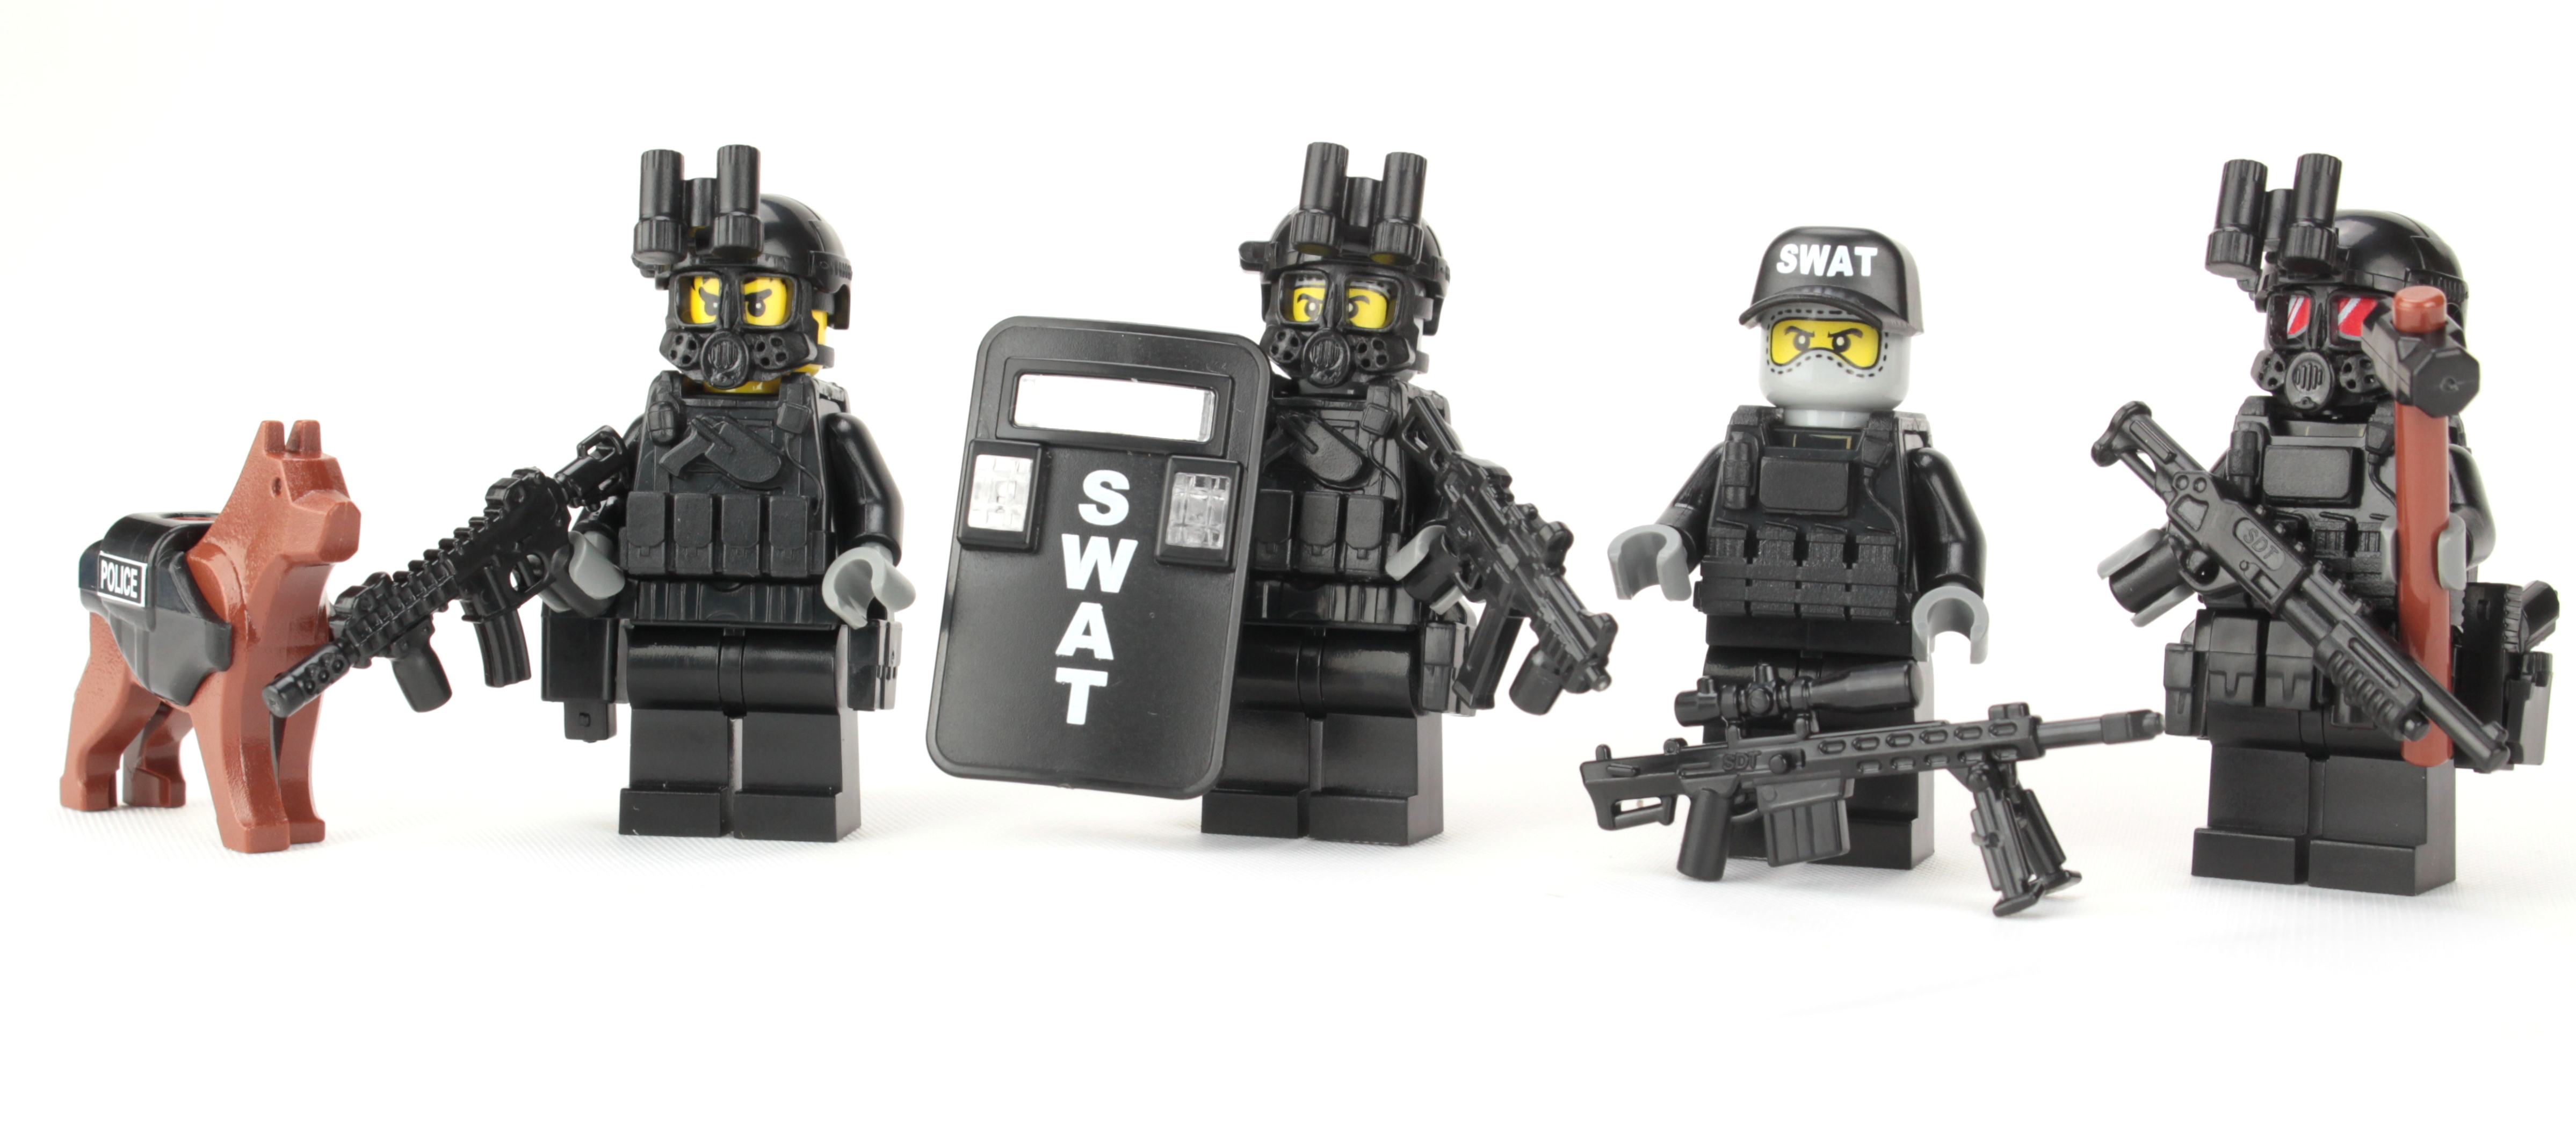 Police Swat Team made with real LEGO® minifigures